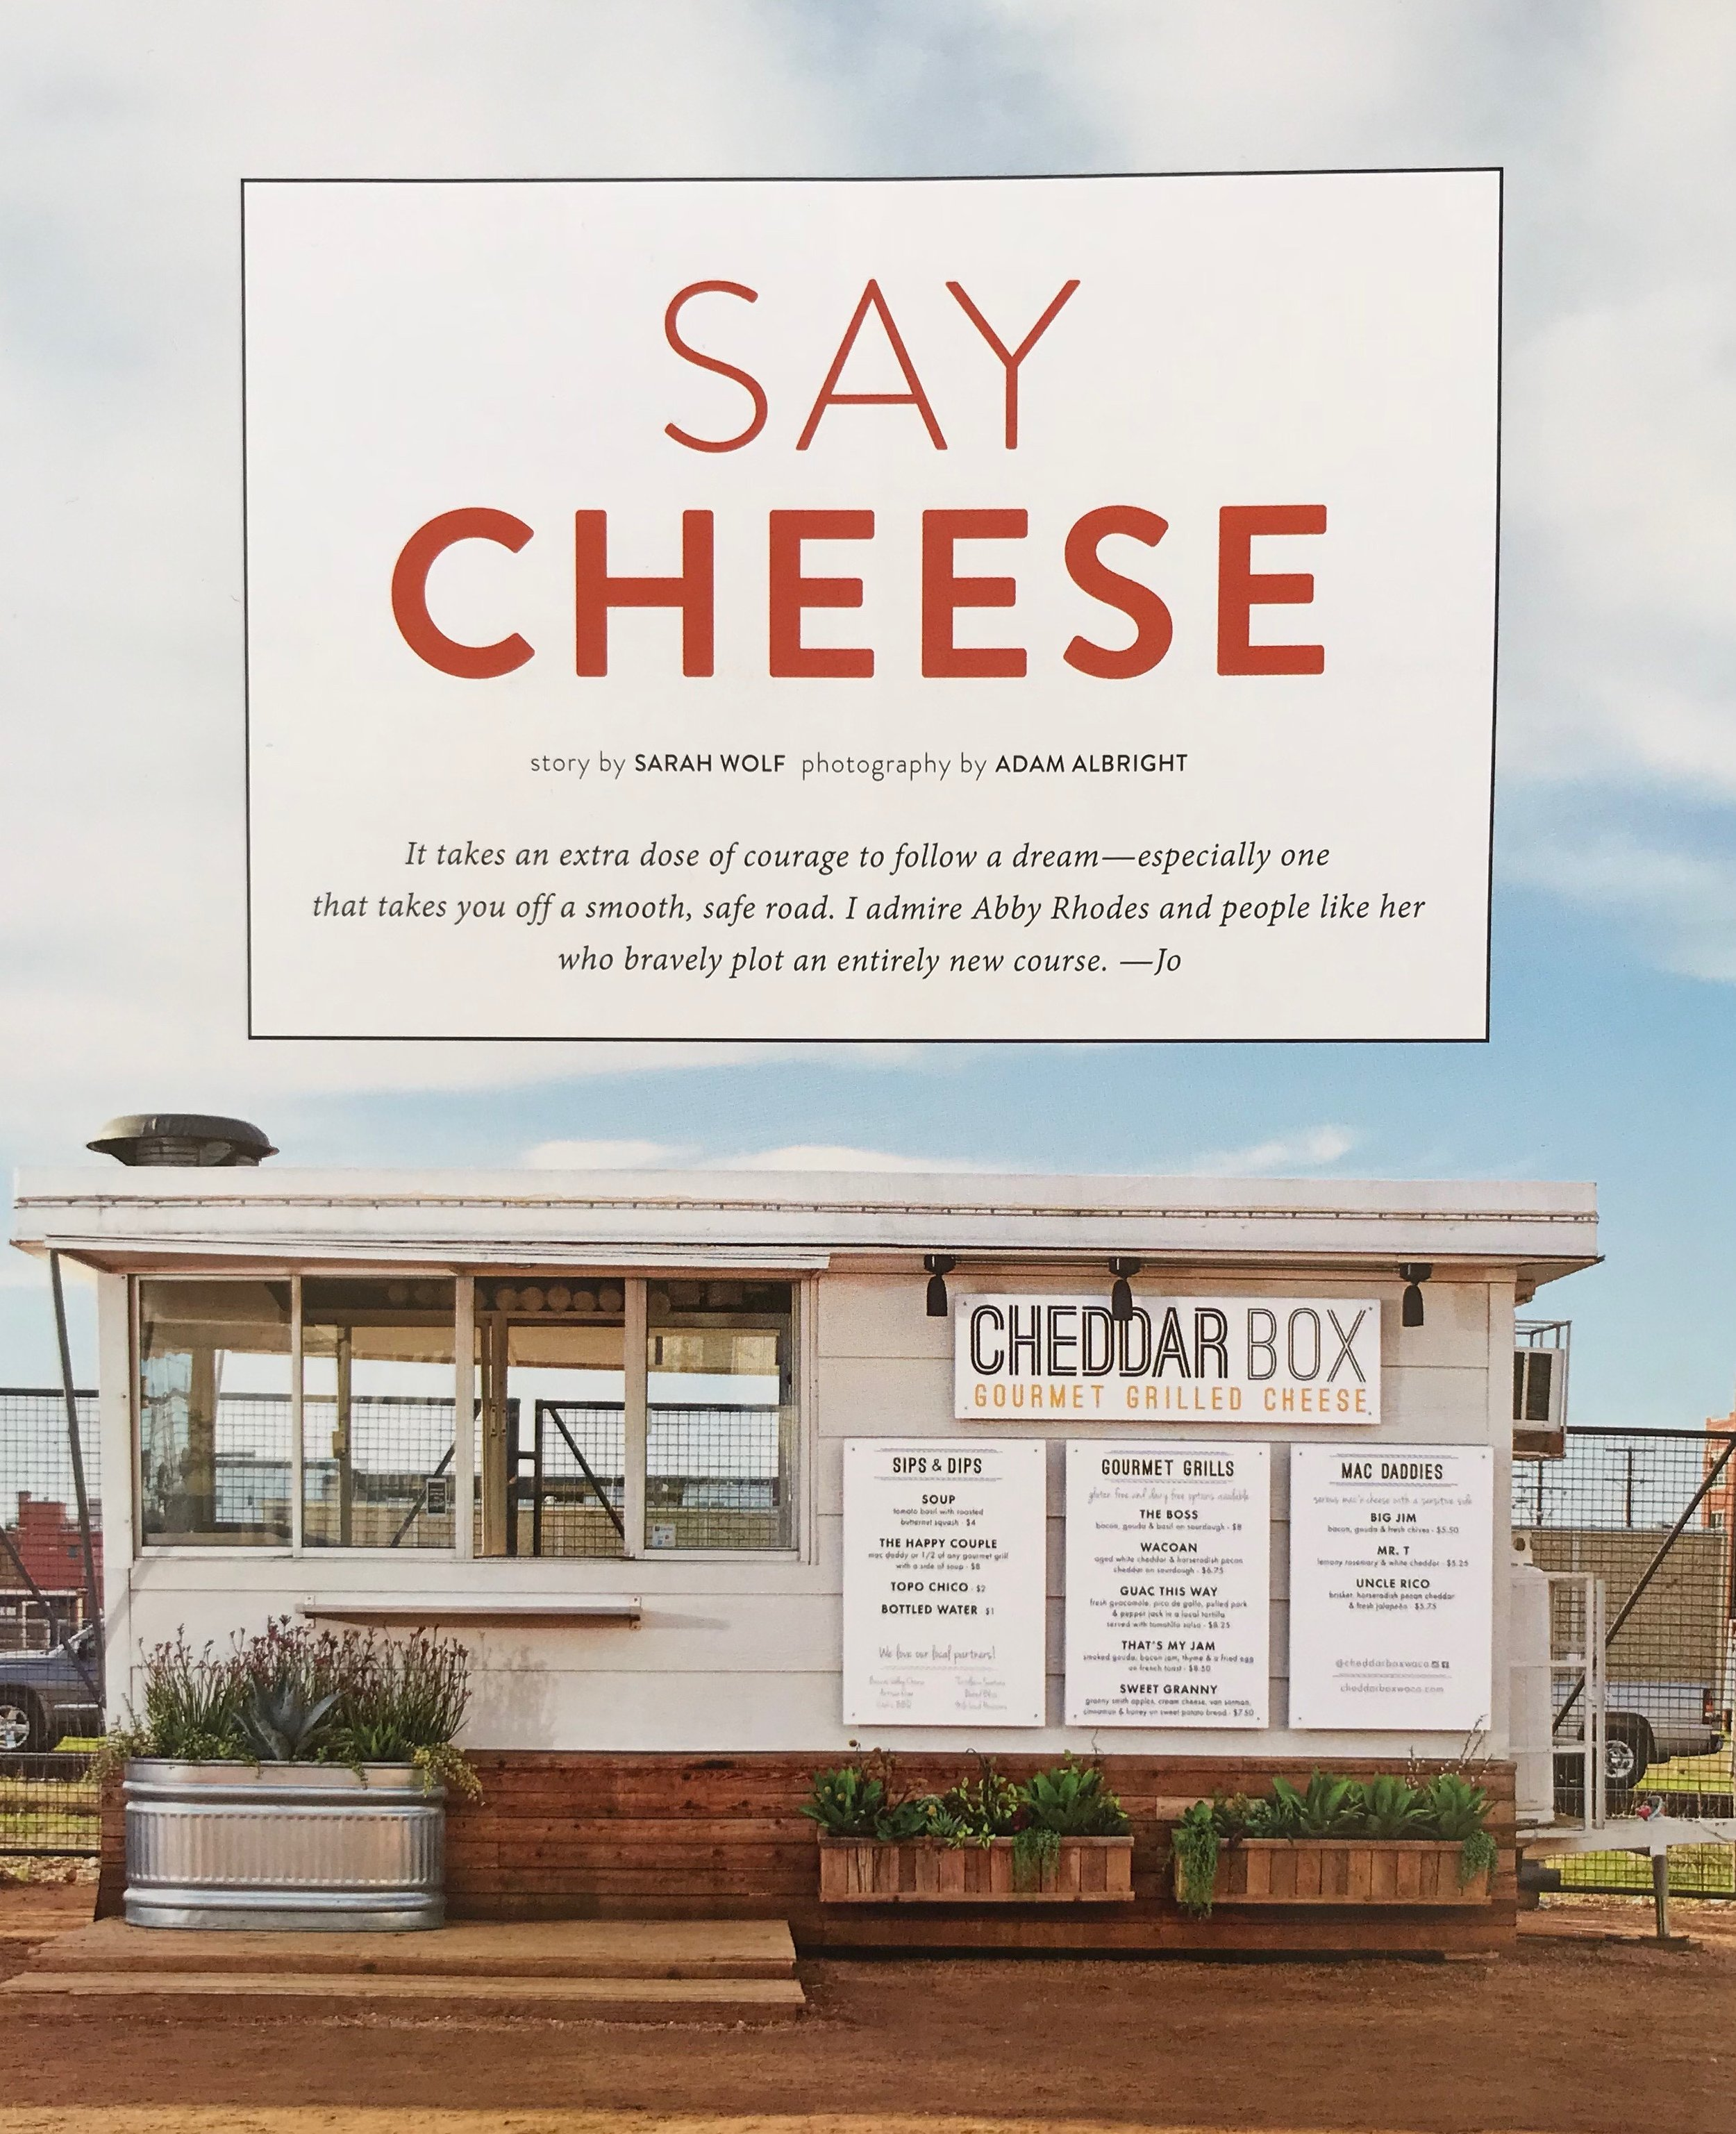 SAY CHEESE   story by SARAH WOLF photography by ADAM ALBRIGHT   It takes an extra dose of courage to follow a dream—especially one that takes you off a smooth safe road. I admire Abby Rhodes and people like her who bravely plot an entirely new course. —Jo